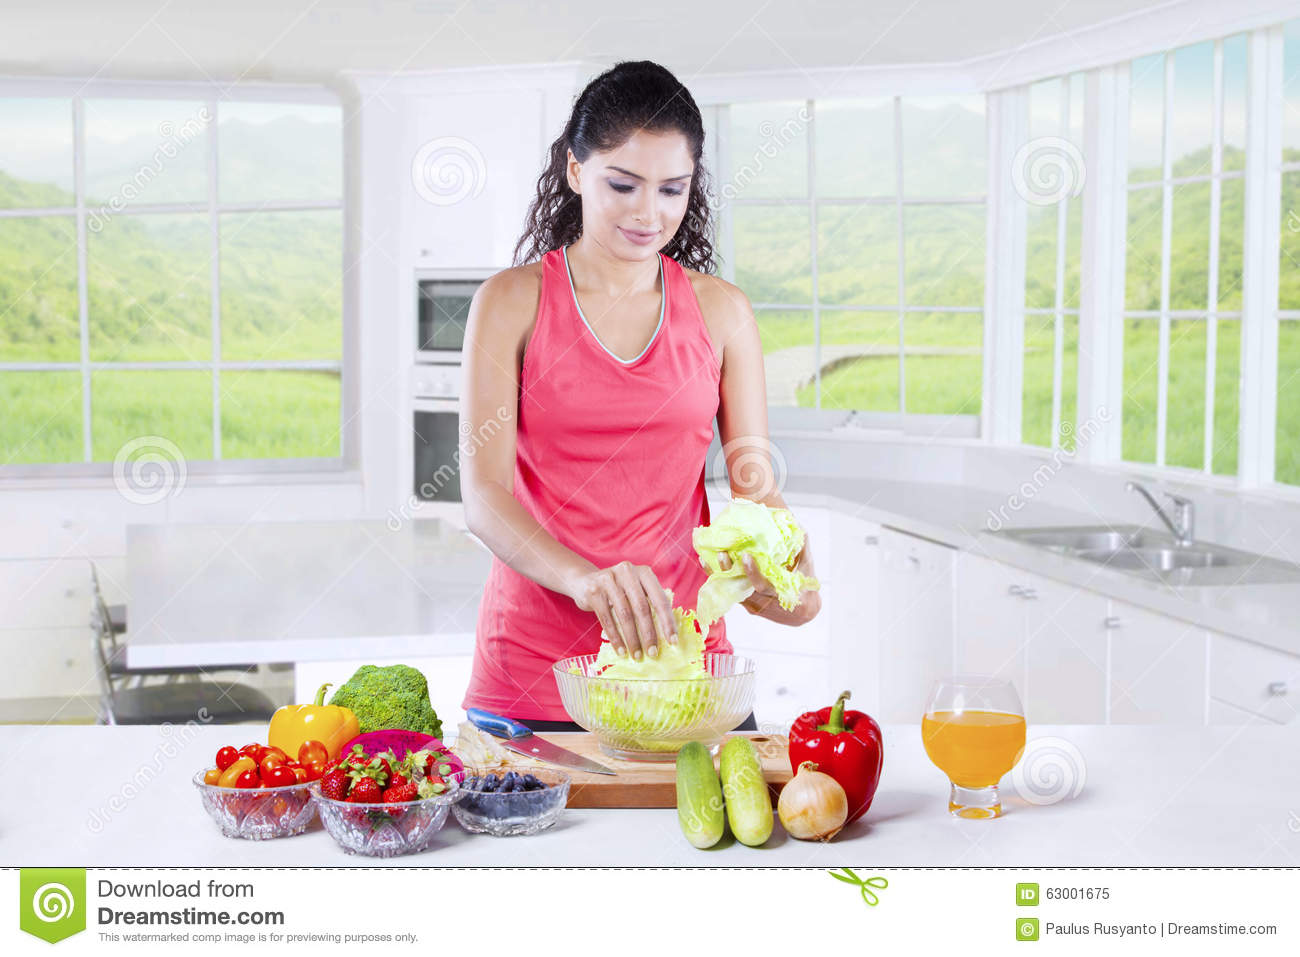 https://thumbs.dreamstime.com/z/indian-woman-cooking-superfood-home-beautiful-sportswear-preparing-healthy-kitchen-63001675.jpg Indian Woman Cooking